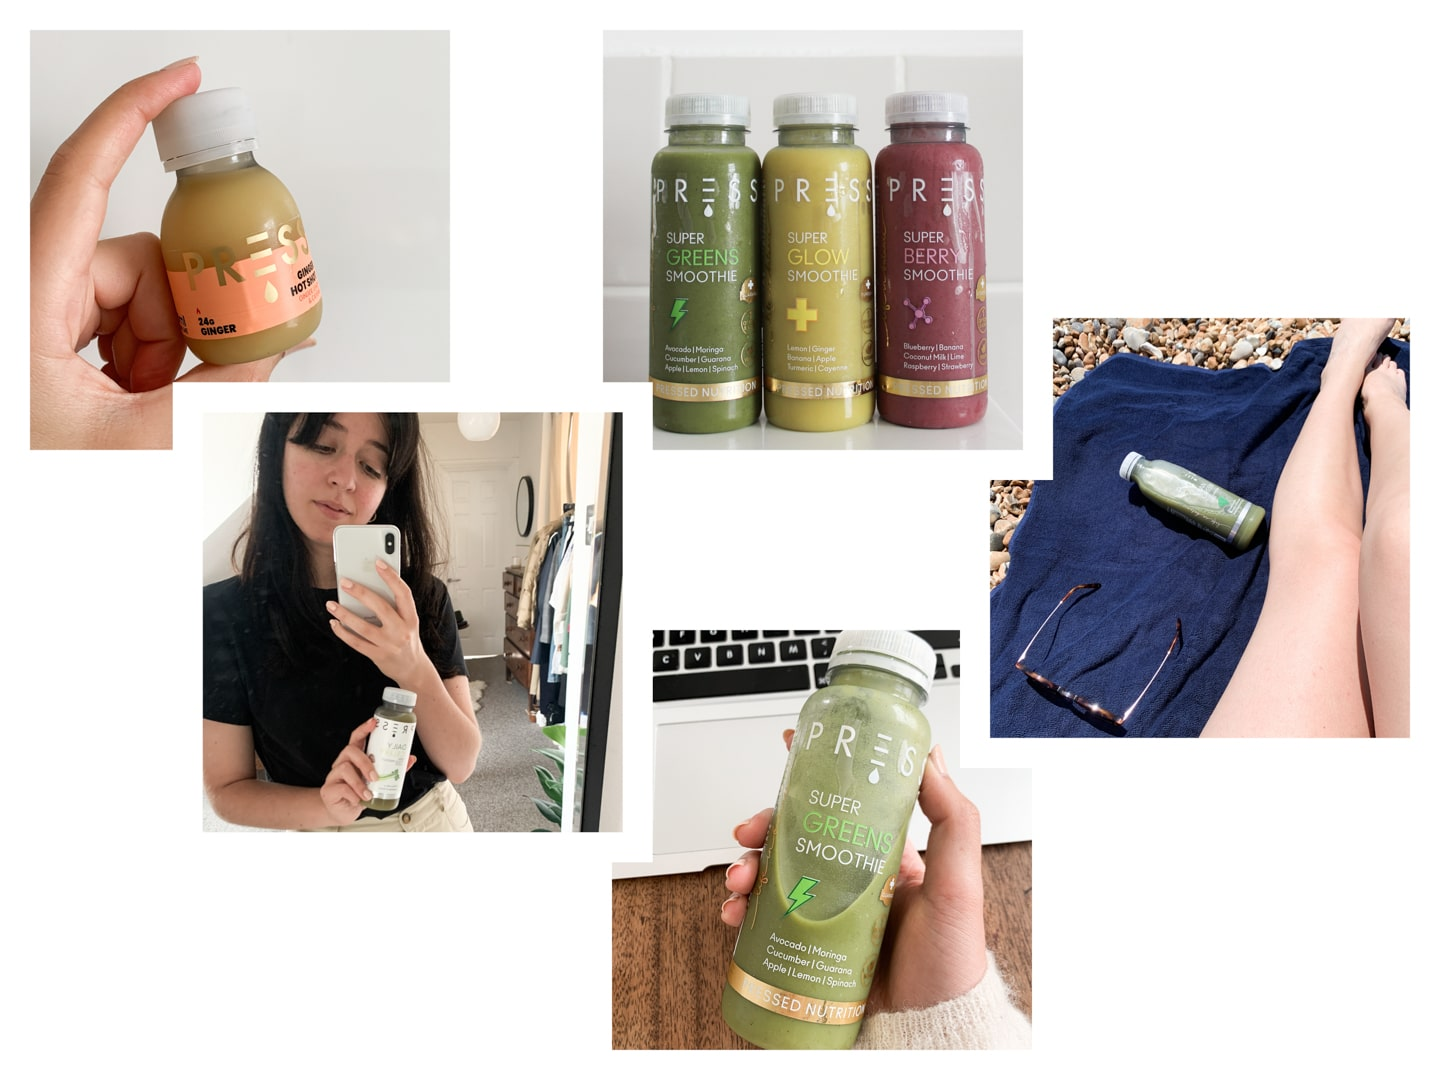 Collage of images of juices